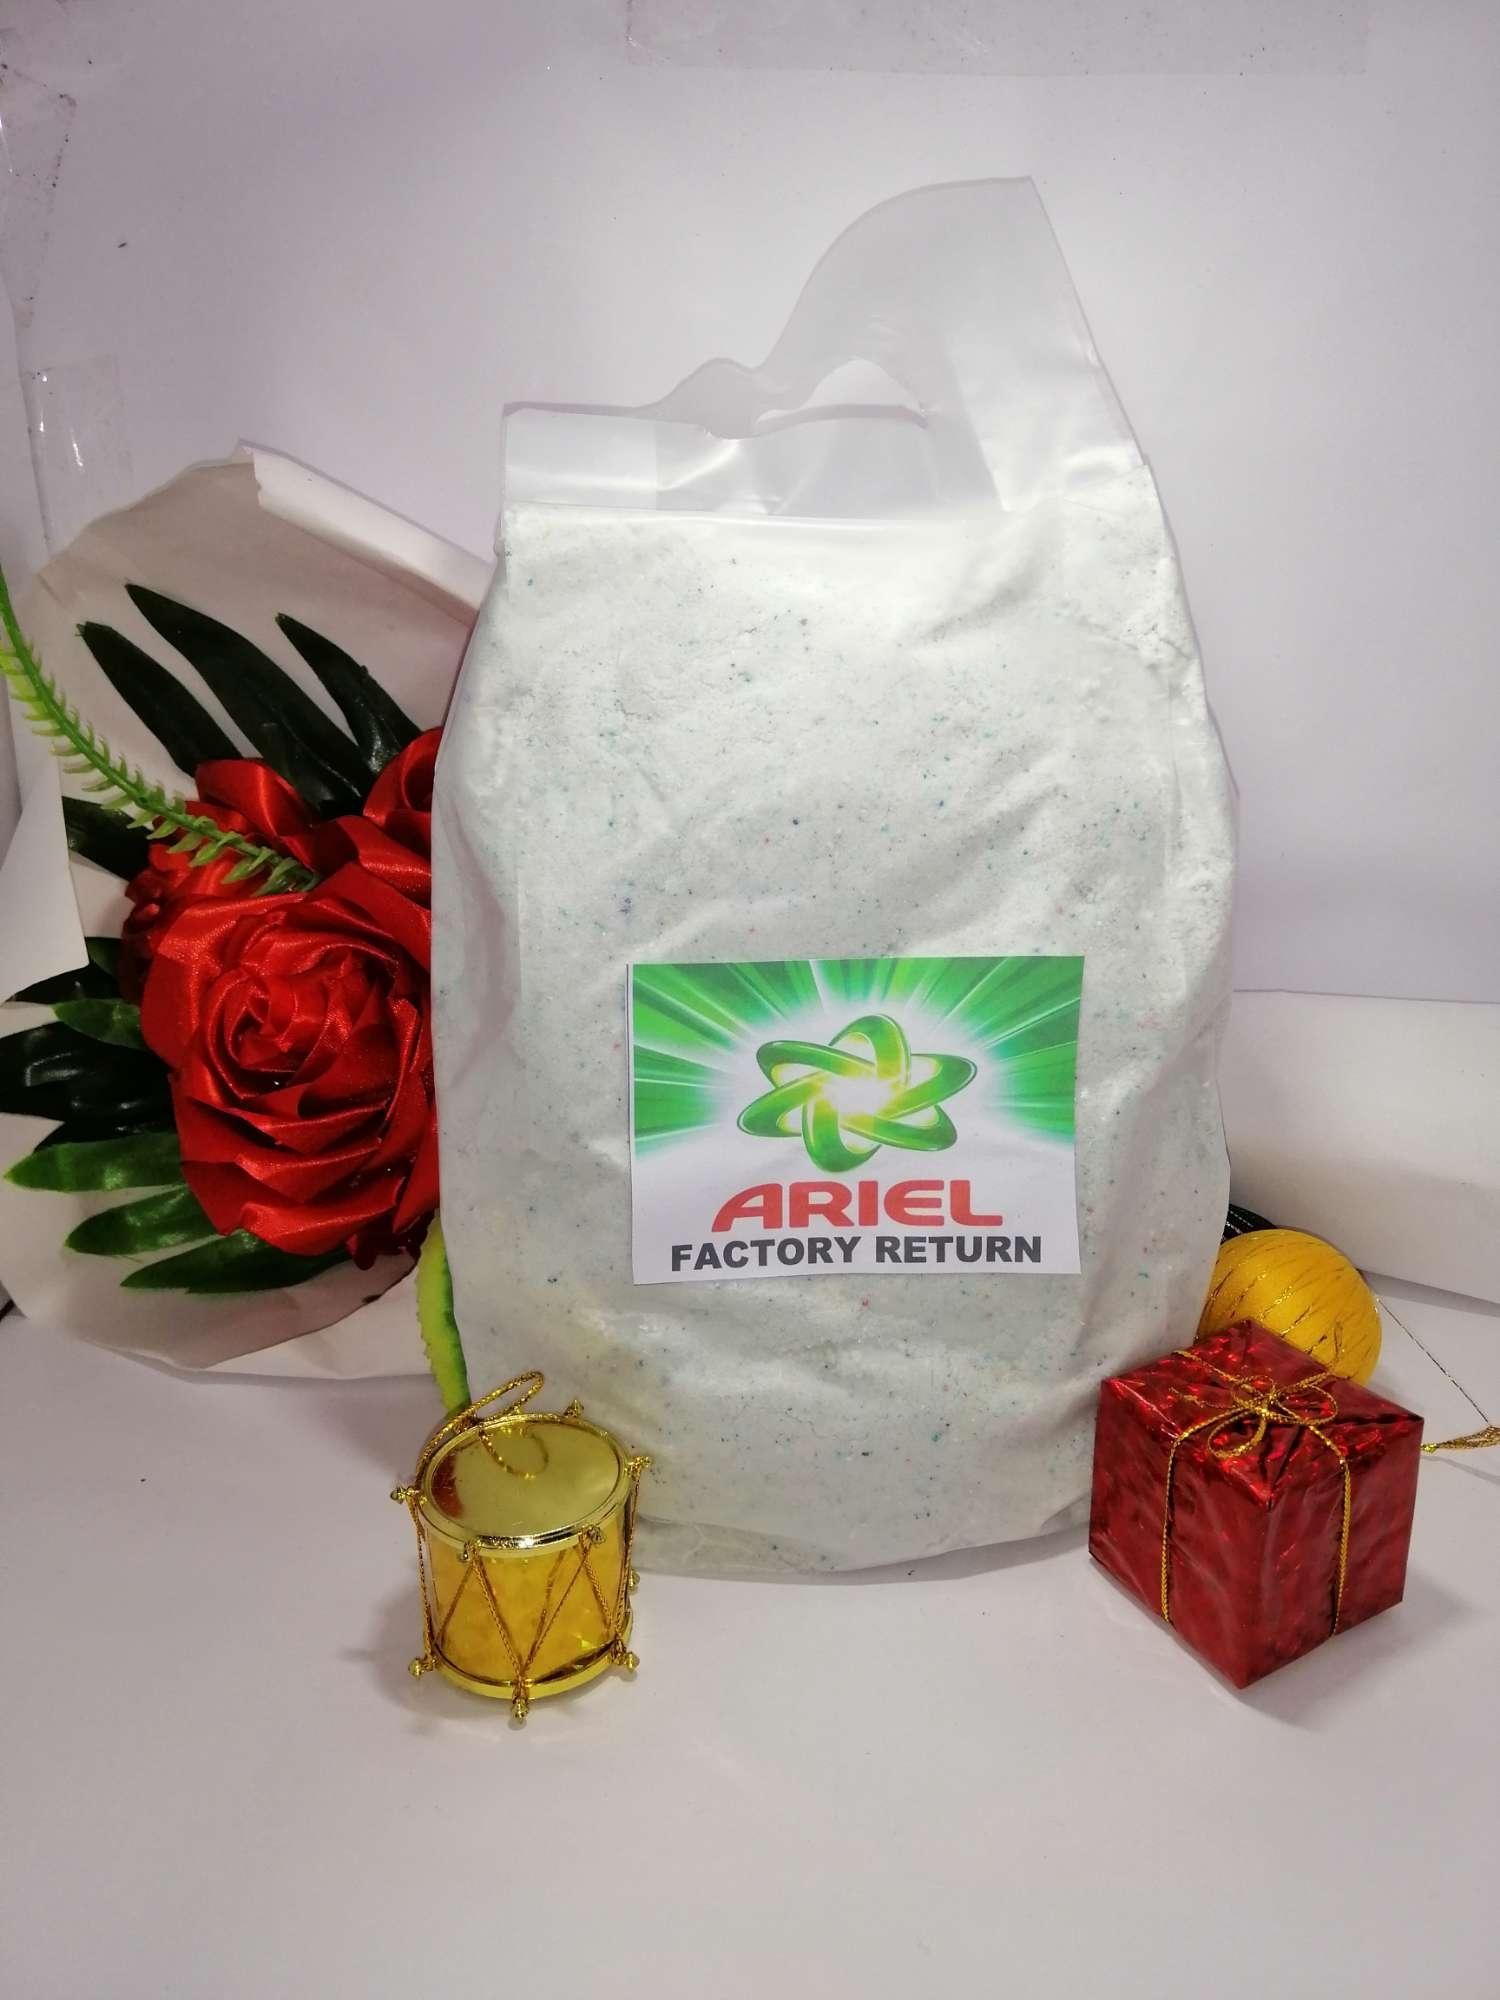 Ariel sunrise Factory Return Limited offer 1kilo each pack